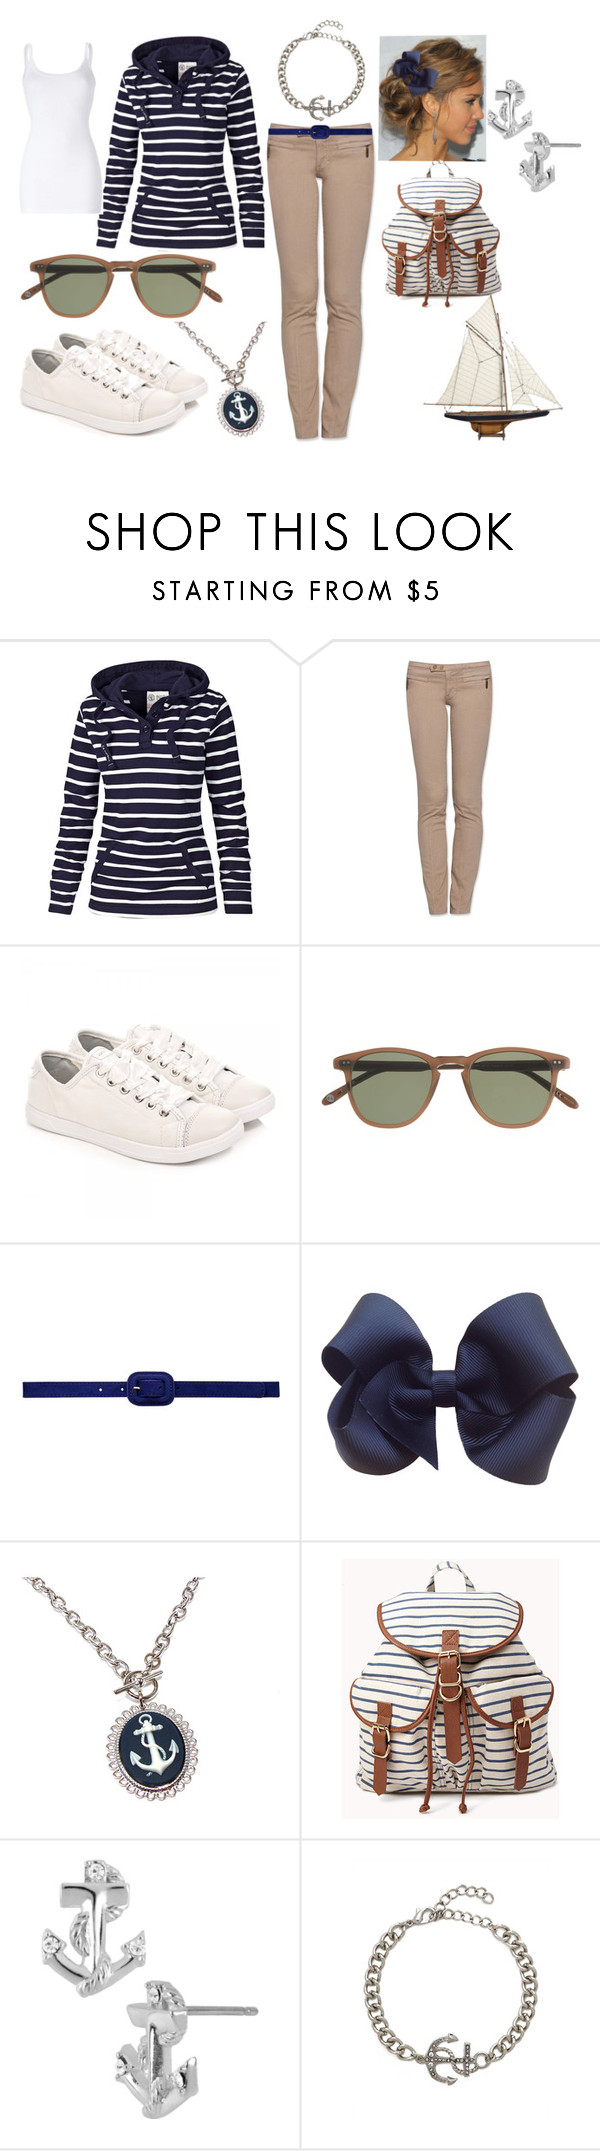 """""""Nautical"""" by lacy-duesterhaus ❤ liked on Polyvore featuring Fat Face, Authentic Models, Tory Burch, DKNY, J.Crew, Forever New, Forever 21, Betsey Johnson and BaubleBar"""